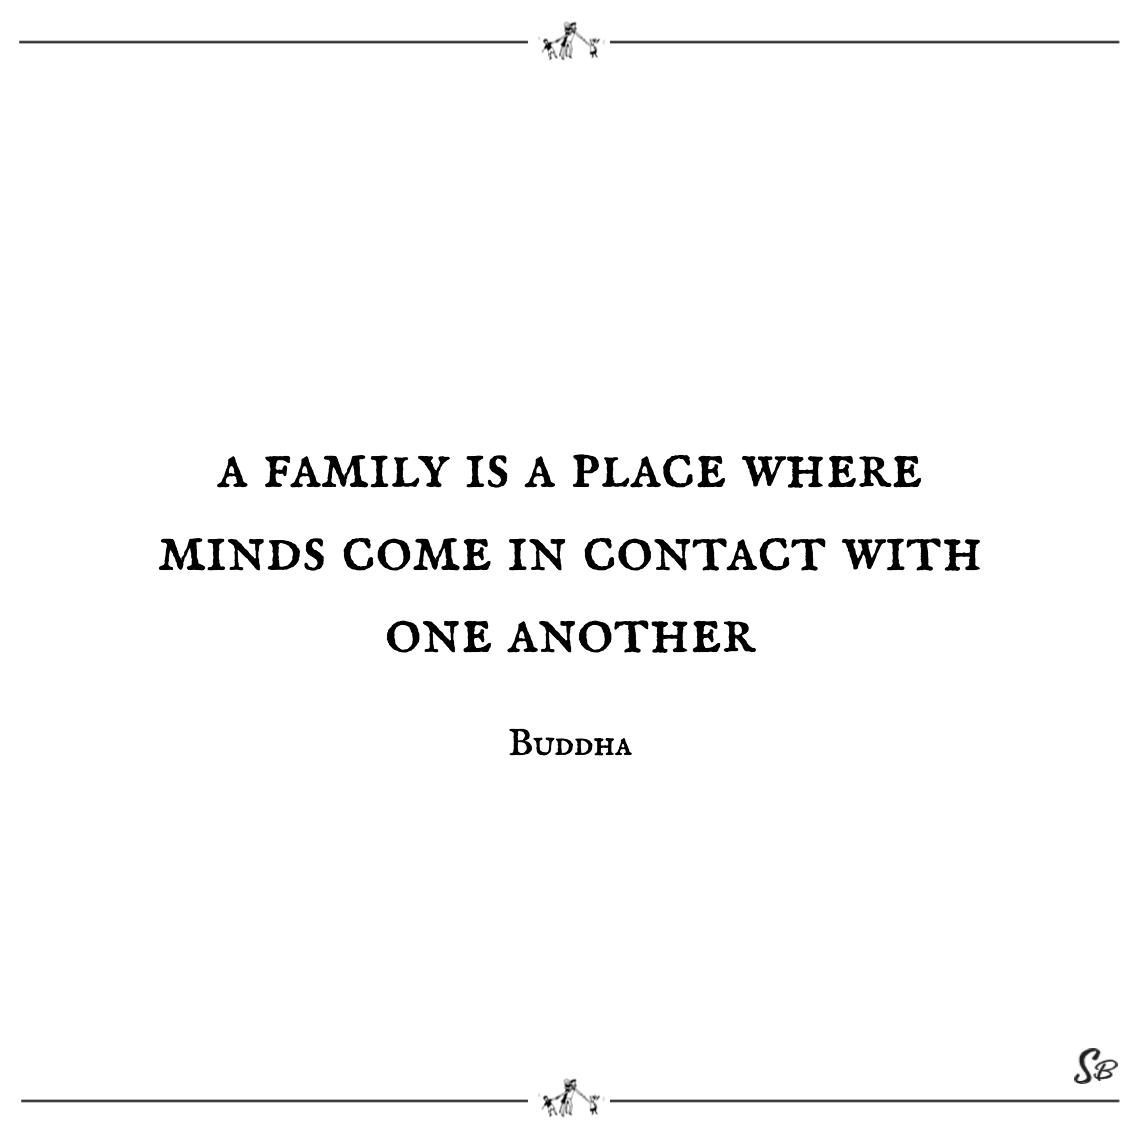 A family is a place where minds come in contact with one another buddha